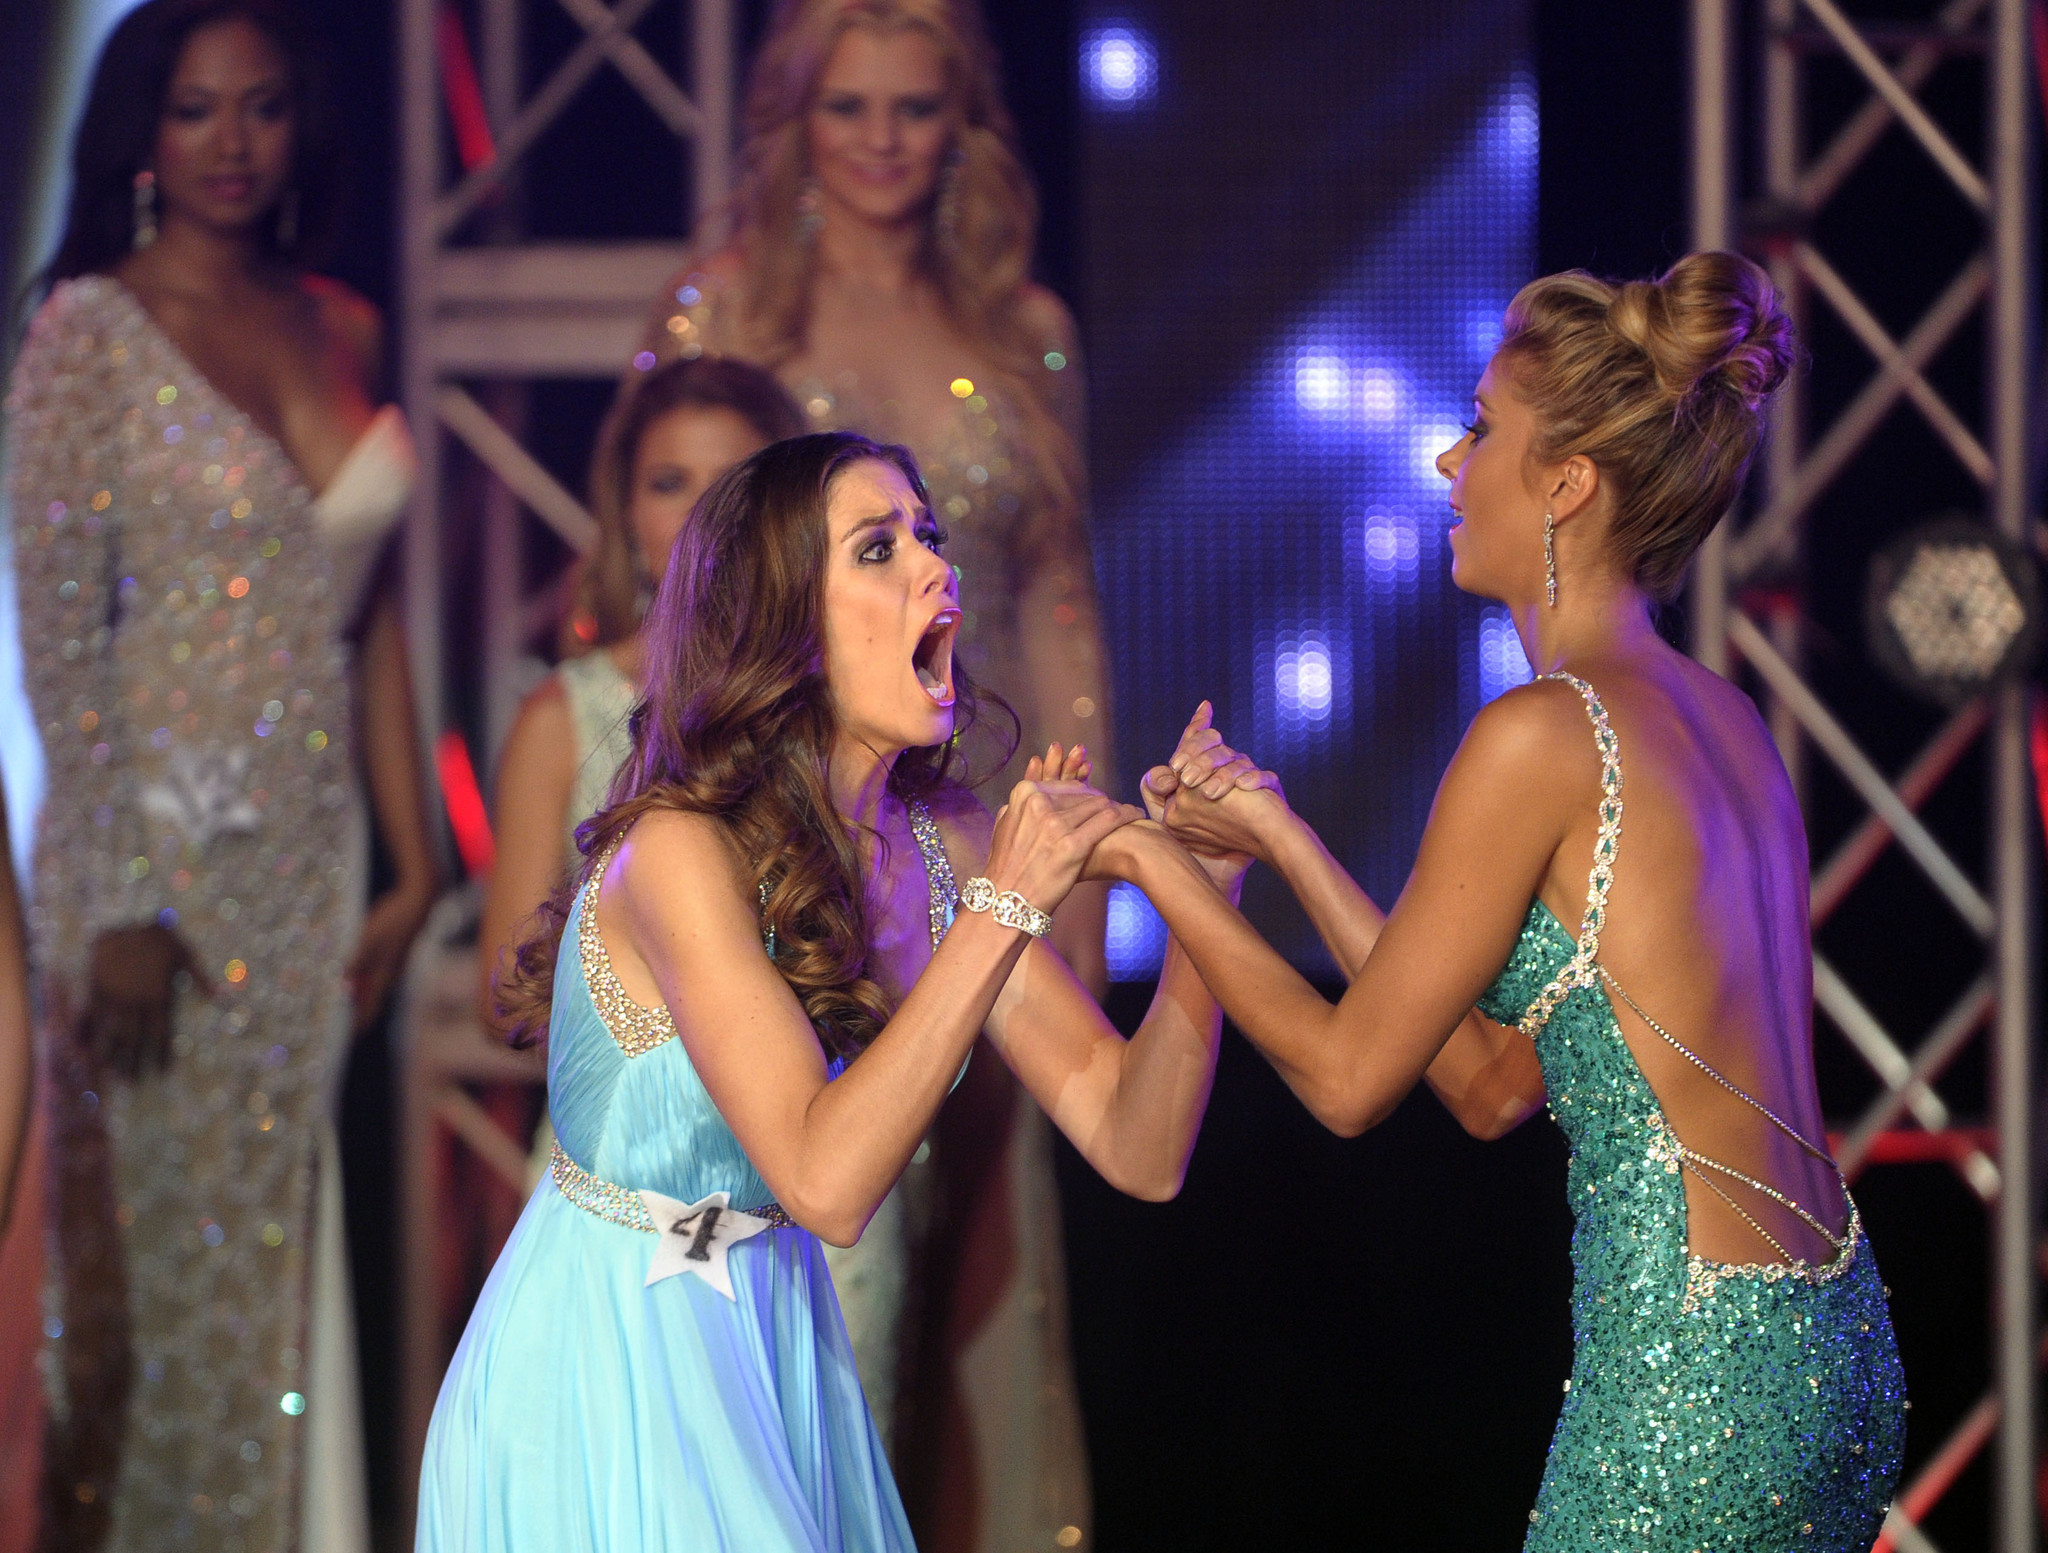 Pictures: Miss Florida USA 2014 - Miss Florida USA 2014